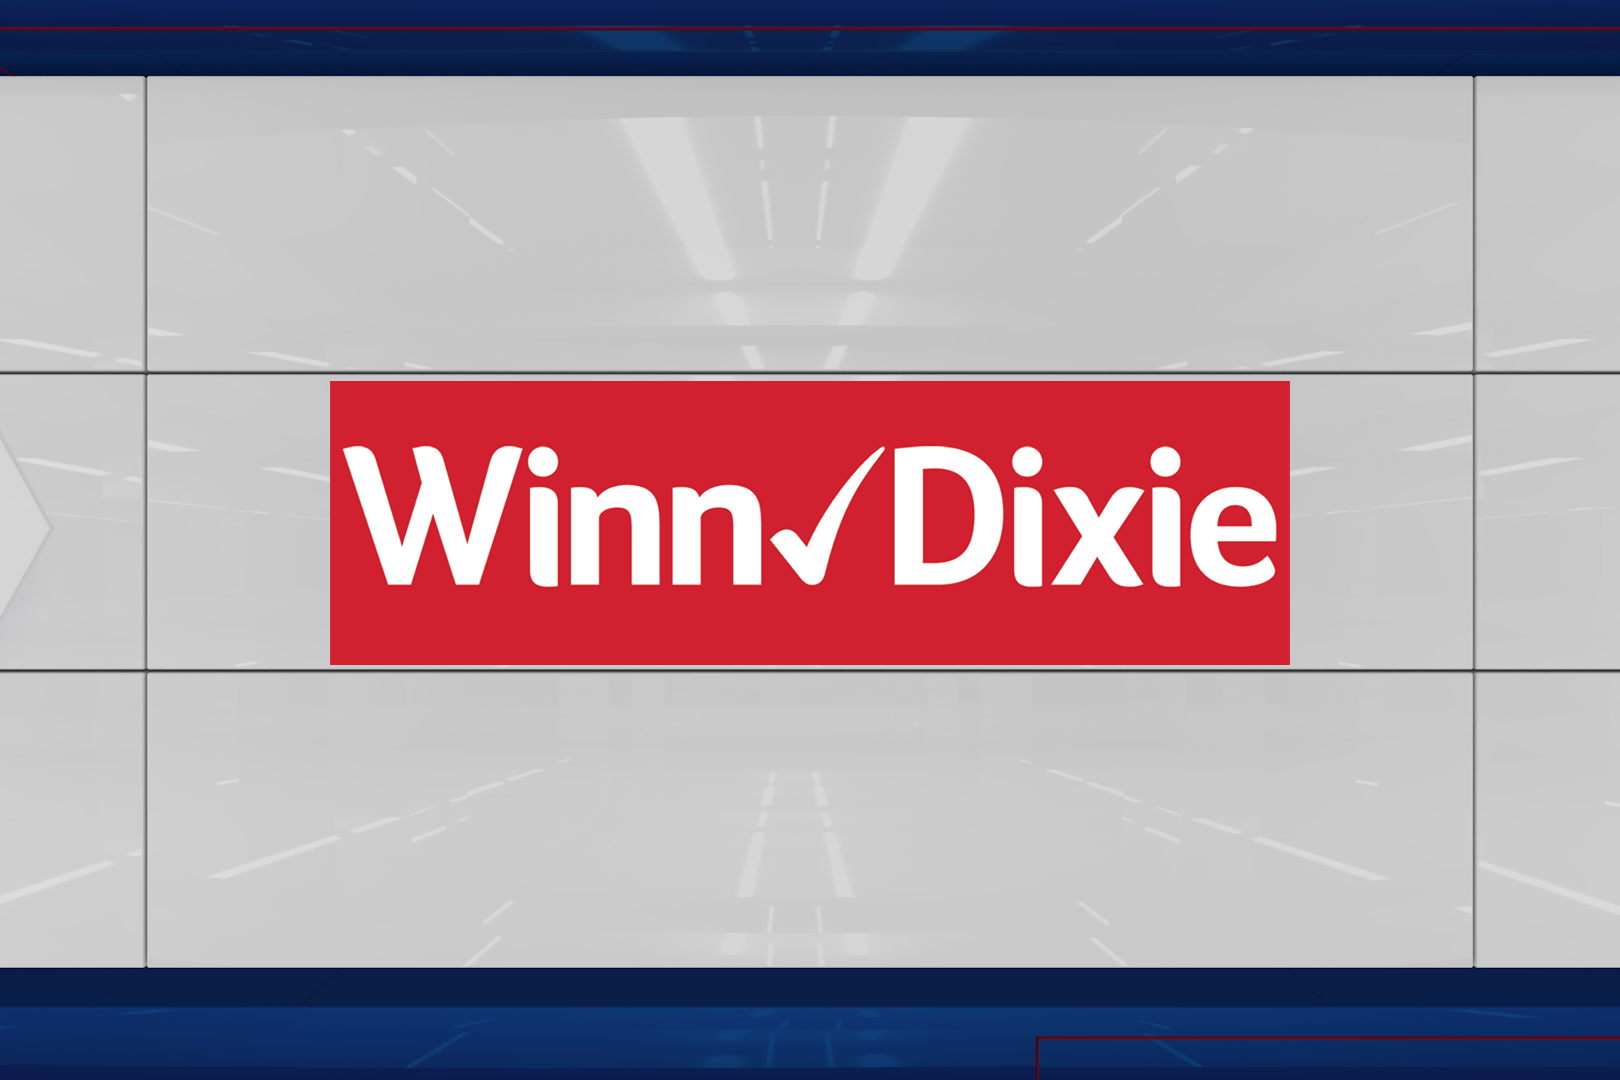 Winn-Dixie parent company plans to file chapter 11; close stores